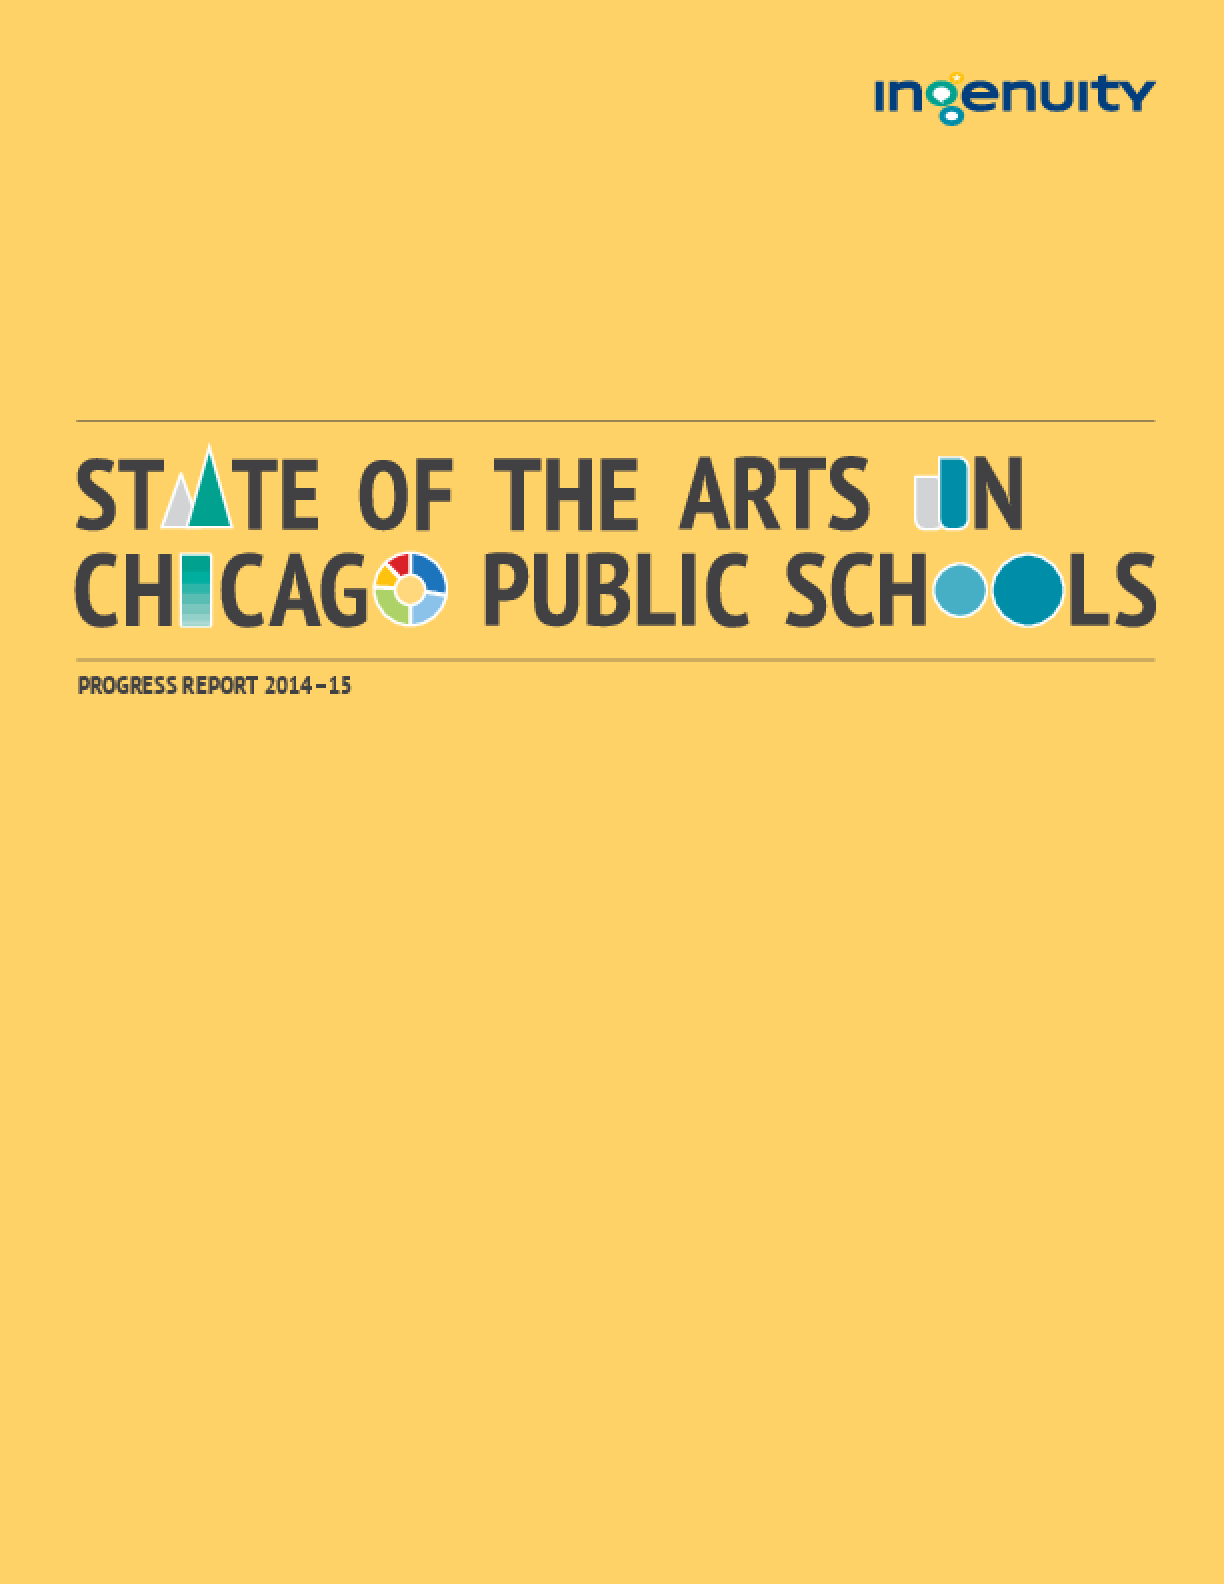 State of the Arts in Chicago Public Schools Progress Report 2014-15